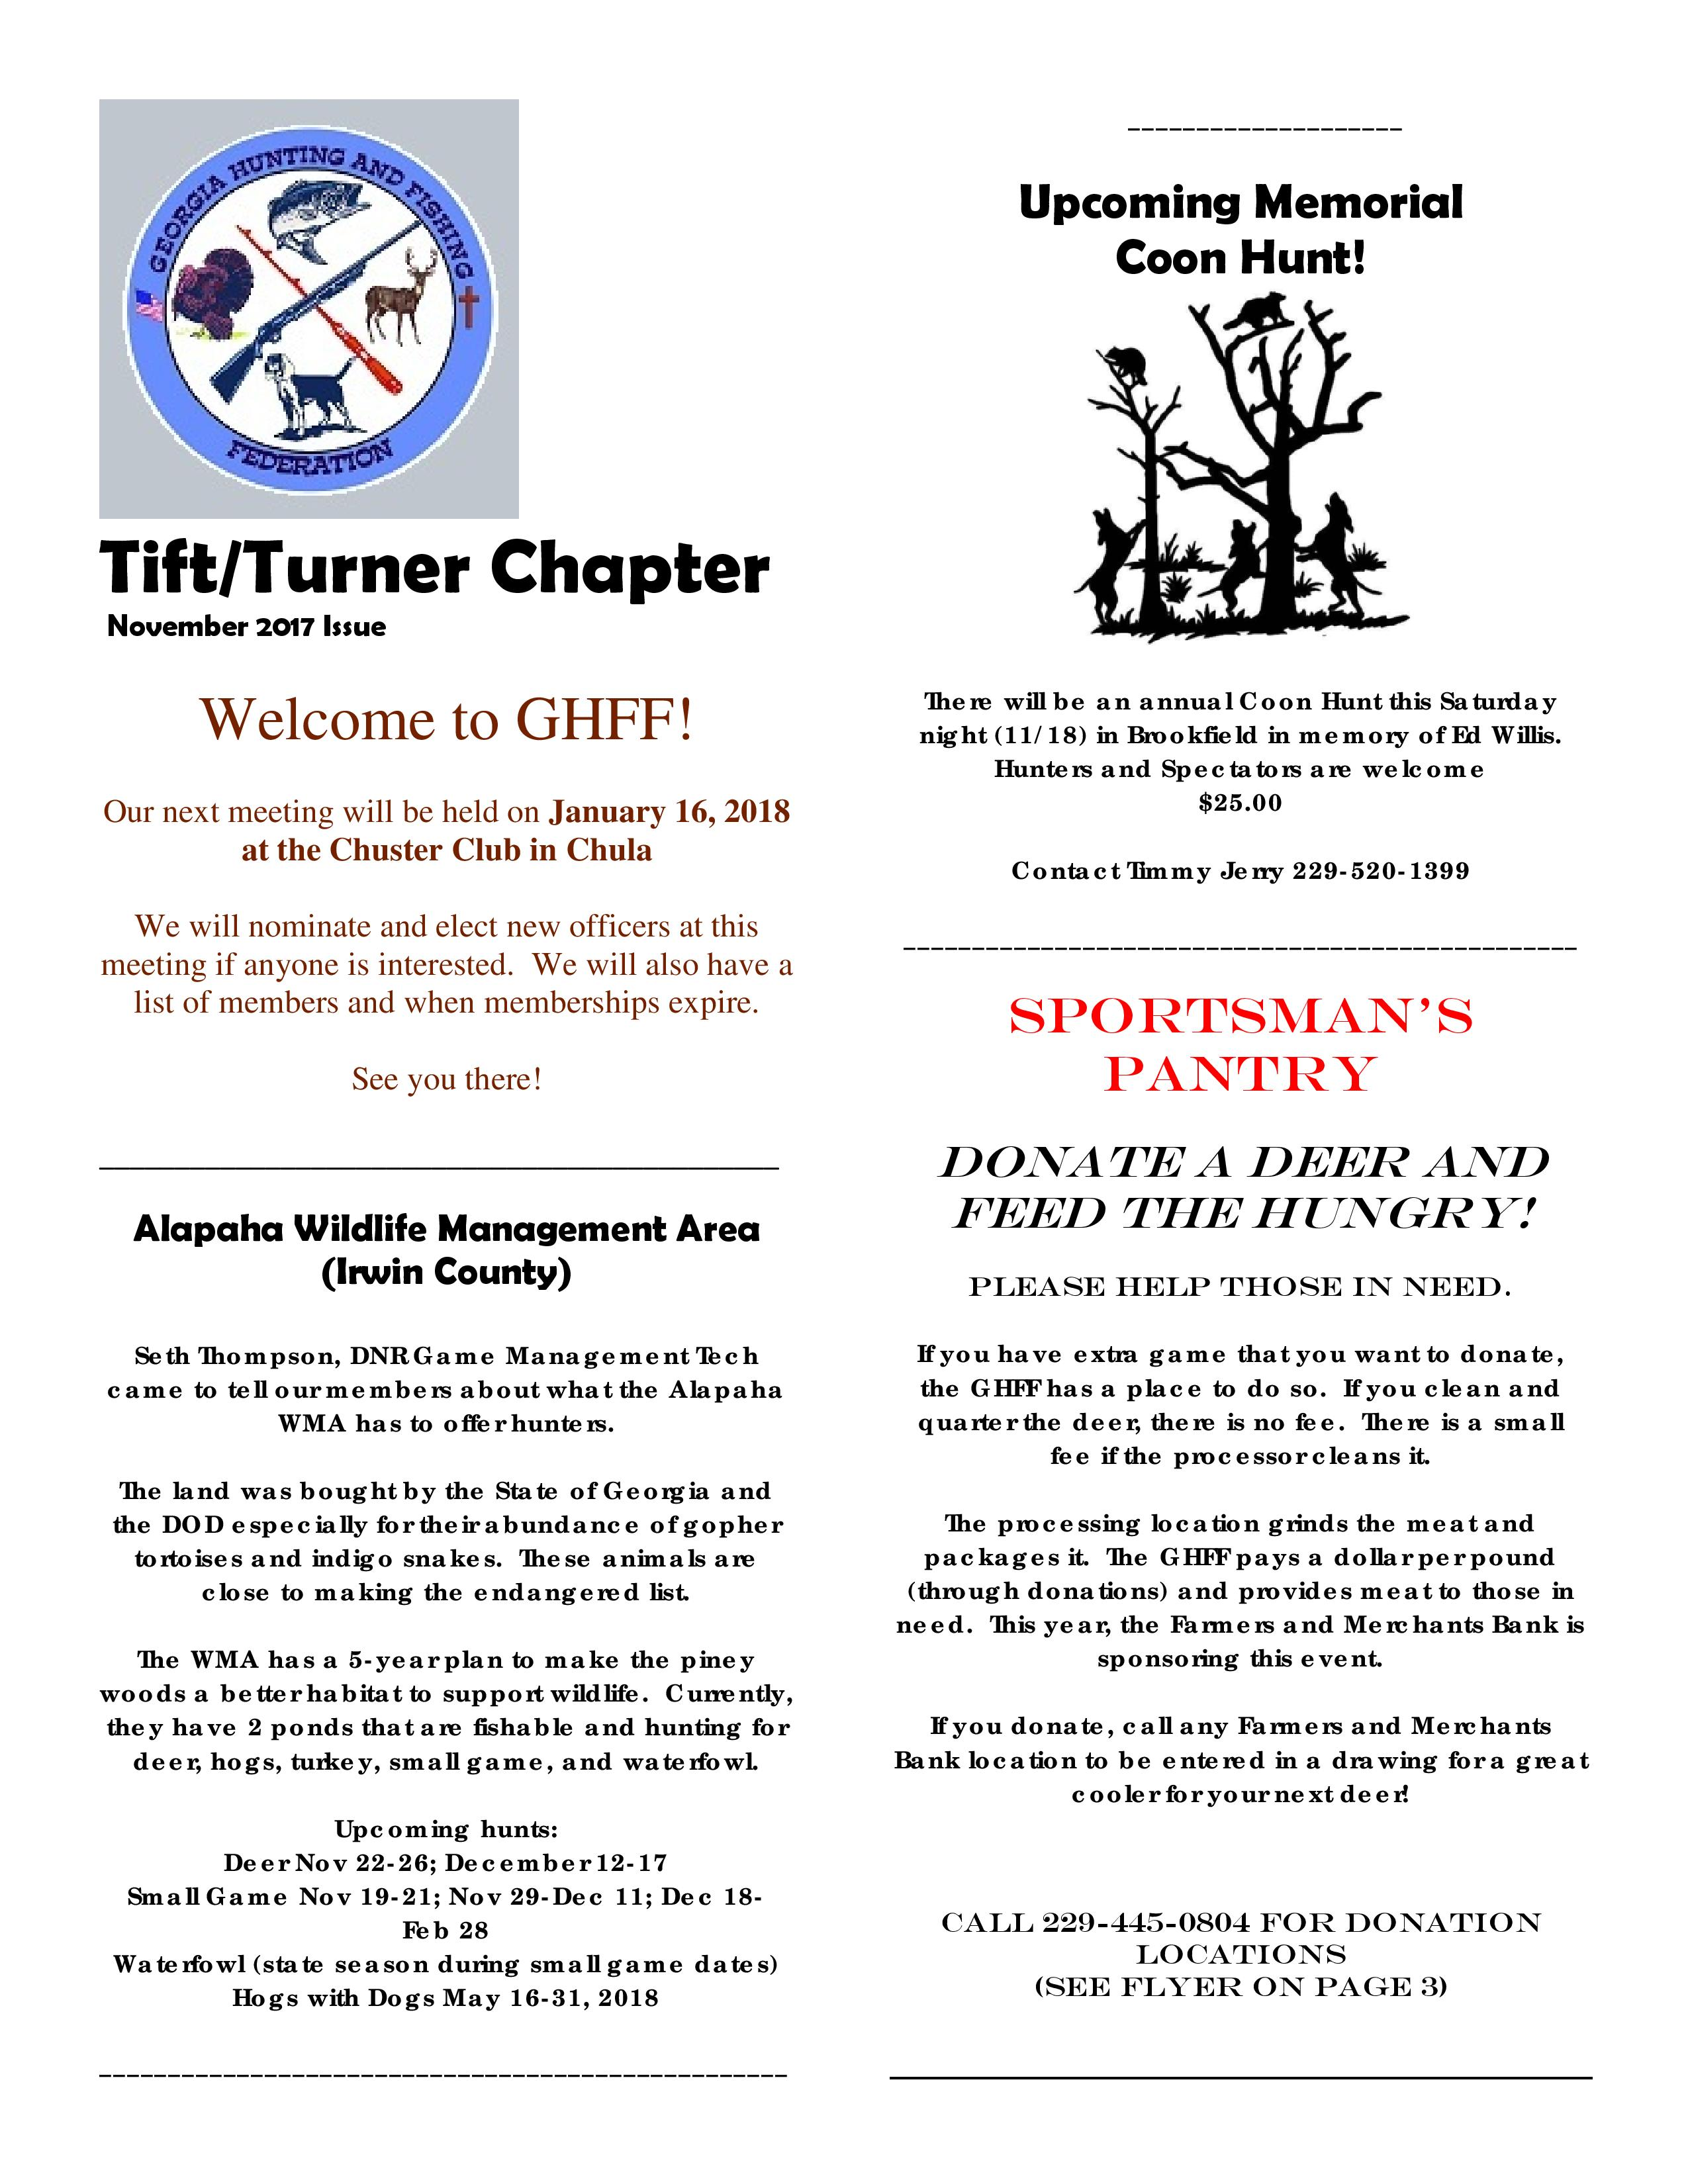 GHFF - Tift-Turner Chapter News Letter